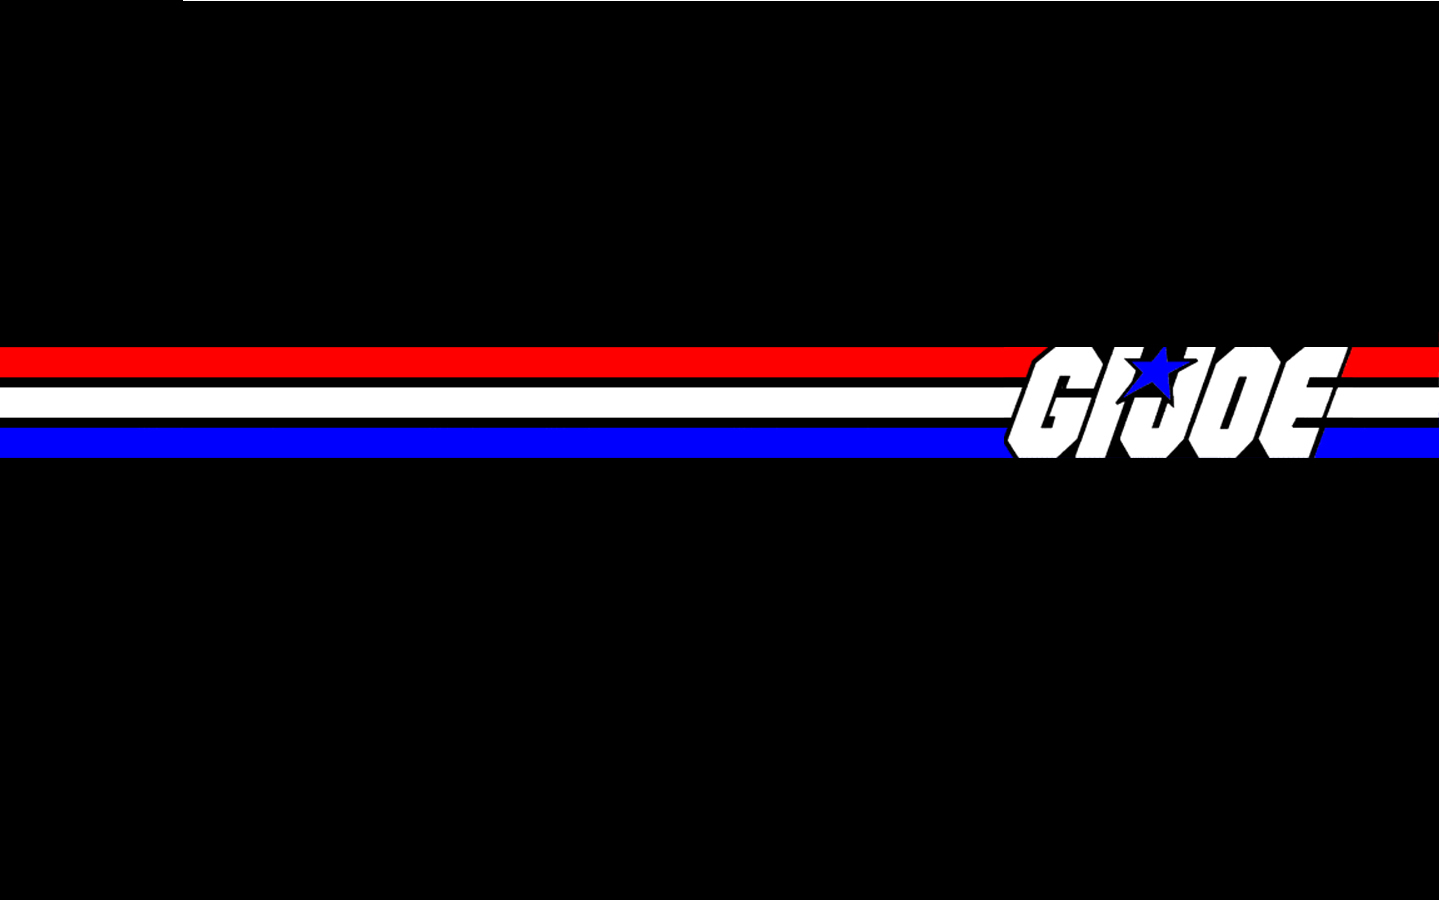 GI Joe Wallpaper and Background Image 1440x900 ID10906 1440x900